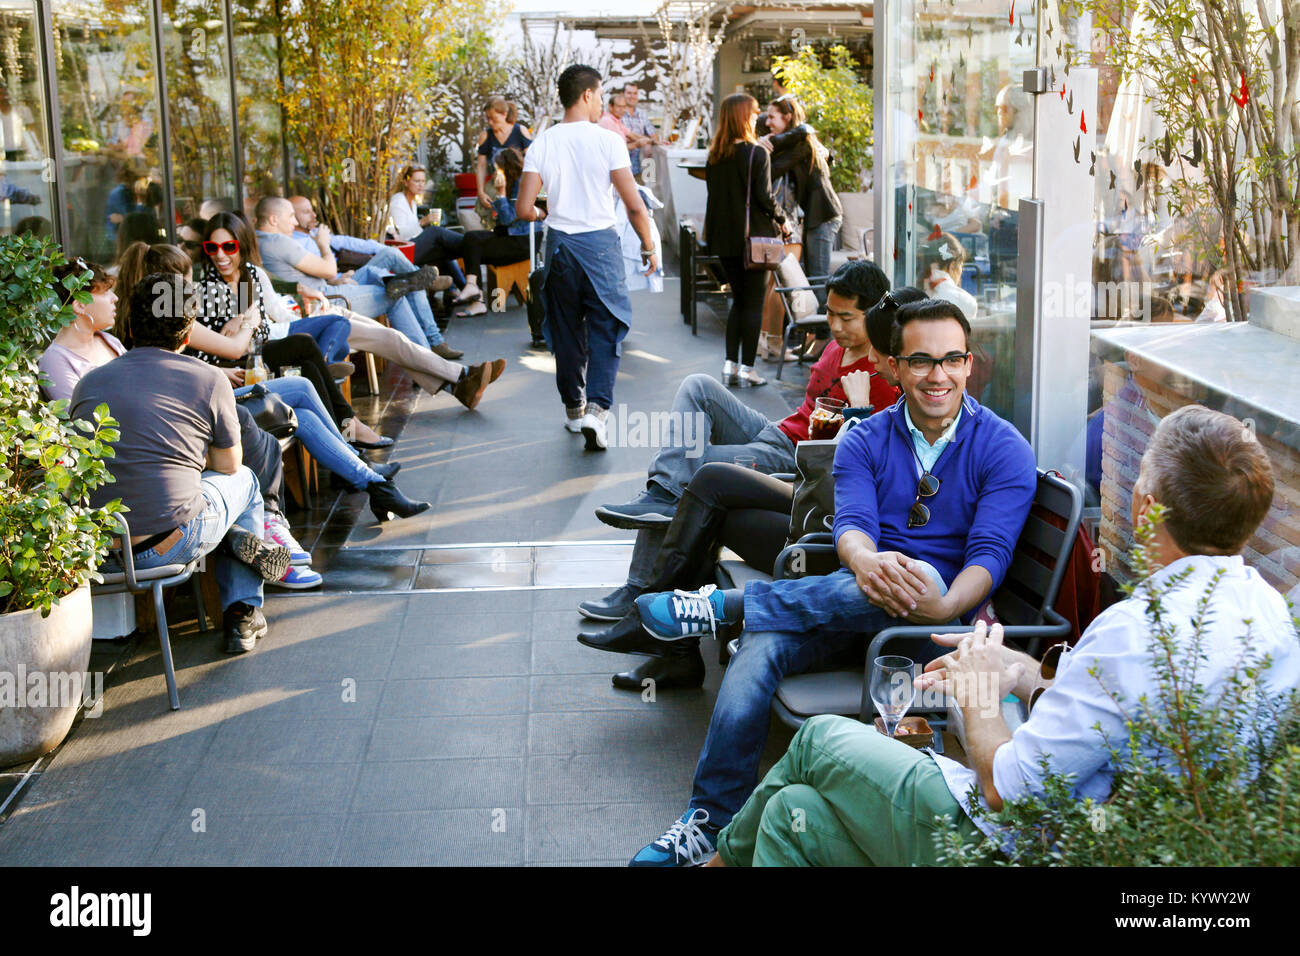 The rooftop bar / terrace at Mercado San Antón Market, Madrid, Spain - Stock Image